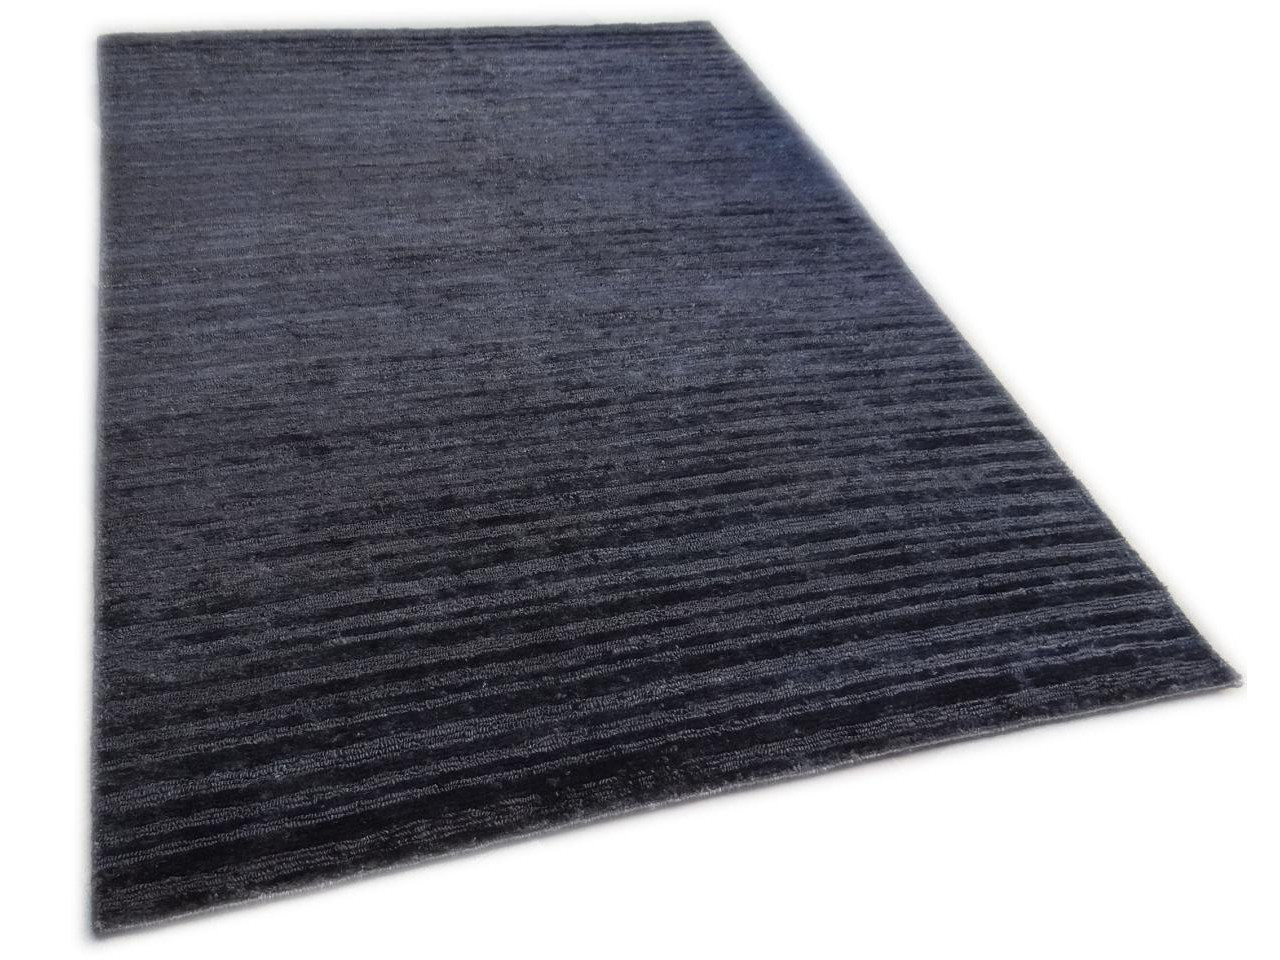 chanvre noir tapis unis n 594 200x140cm. Black Bedroom Furniture Sets. Home Design Ideas